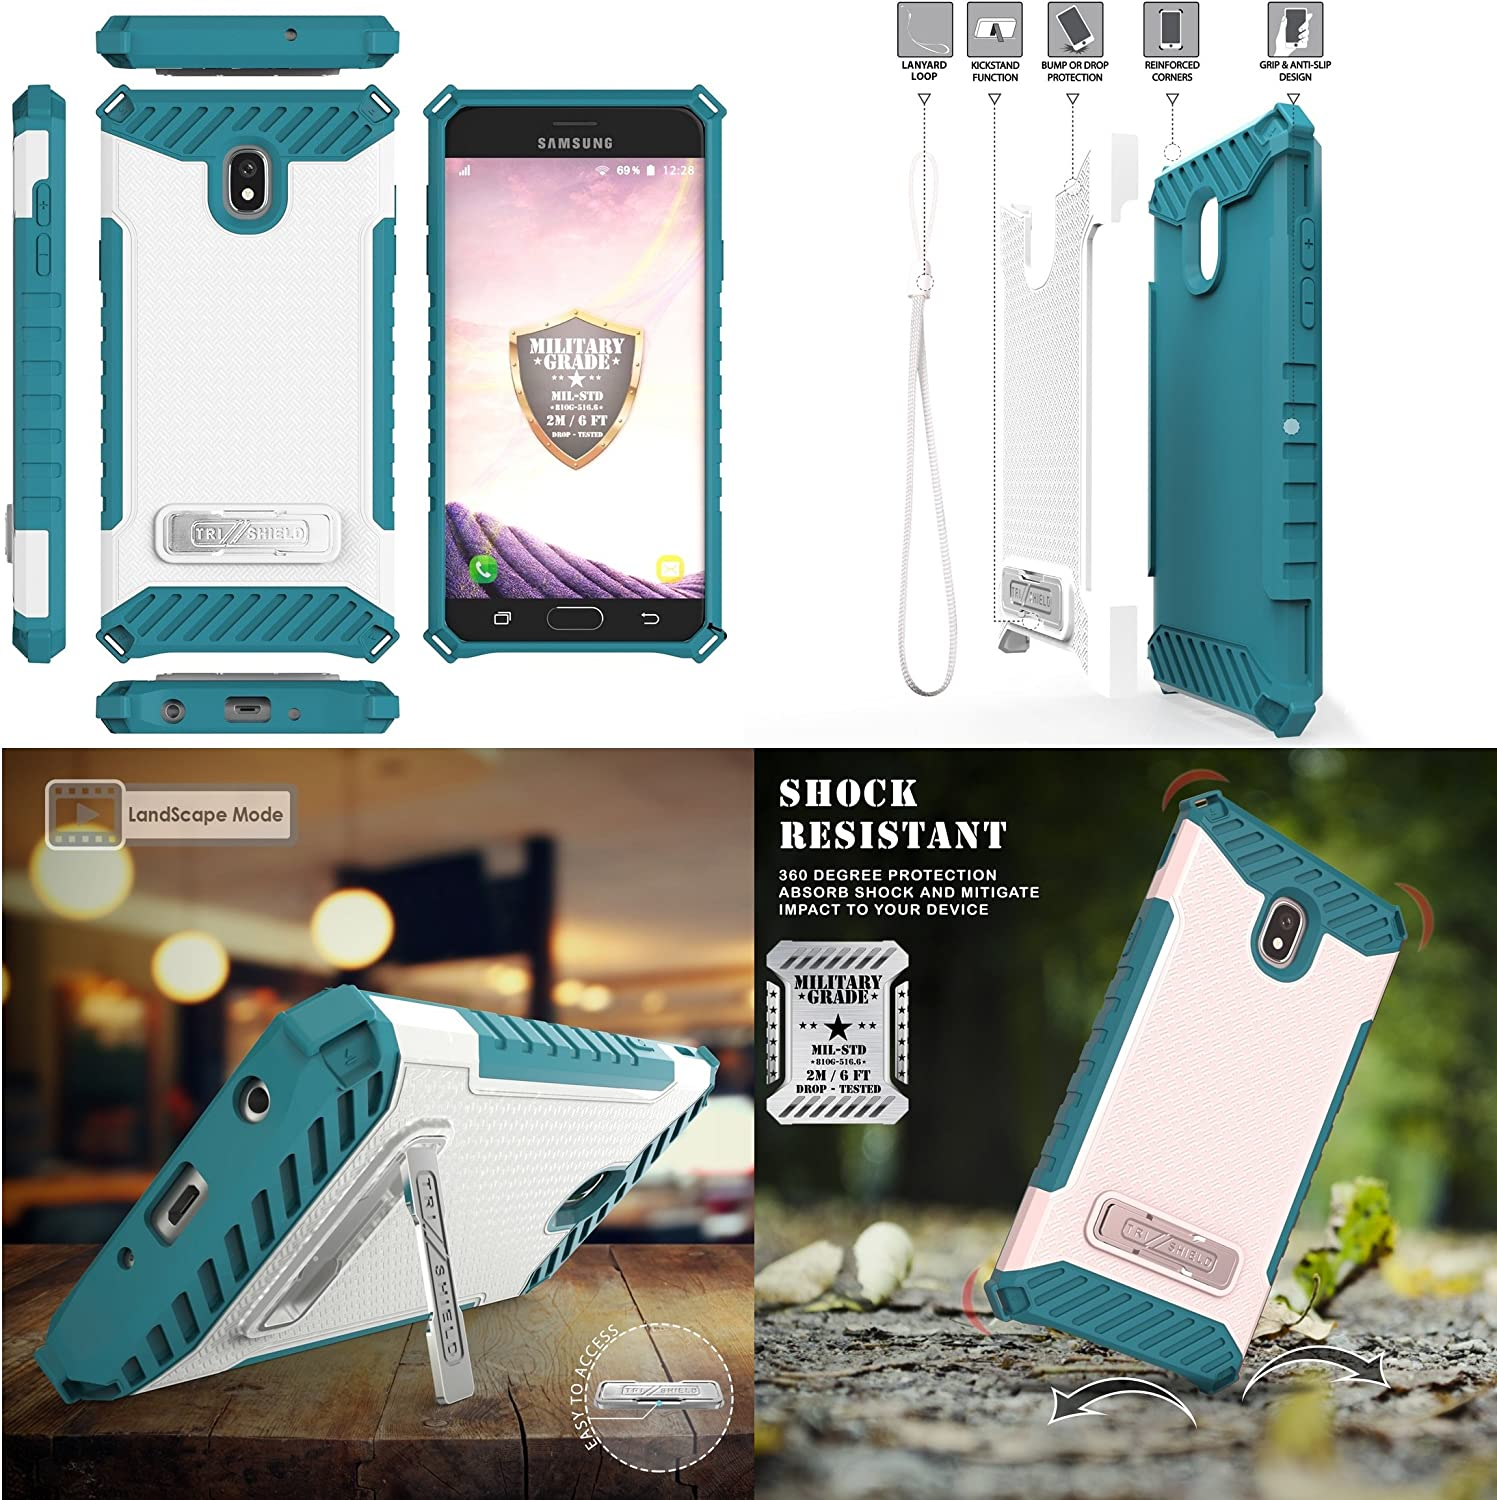 with Flexible USB Cable Dolphins Bemz Accessory Bundle for Samsung Galaxy J7 Refine J7 V 2nd Gen, Star, Crown - Tri-Shield Military Grade Kickstand Case 3.3 Feet